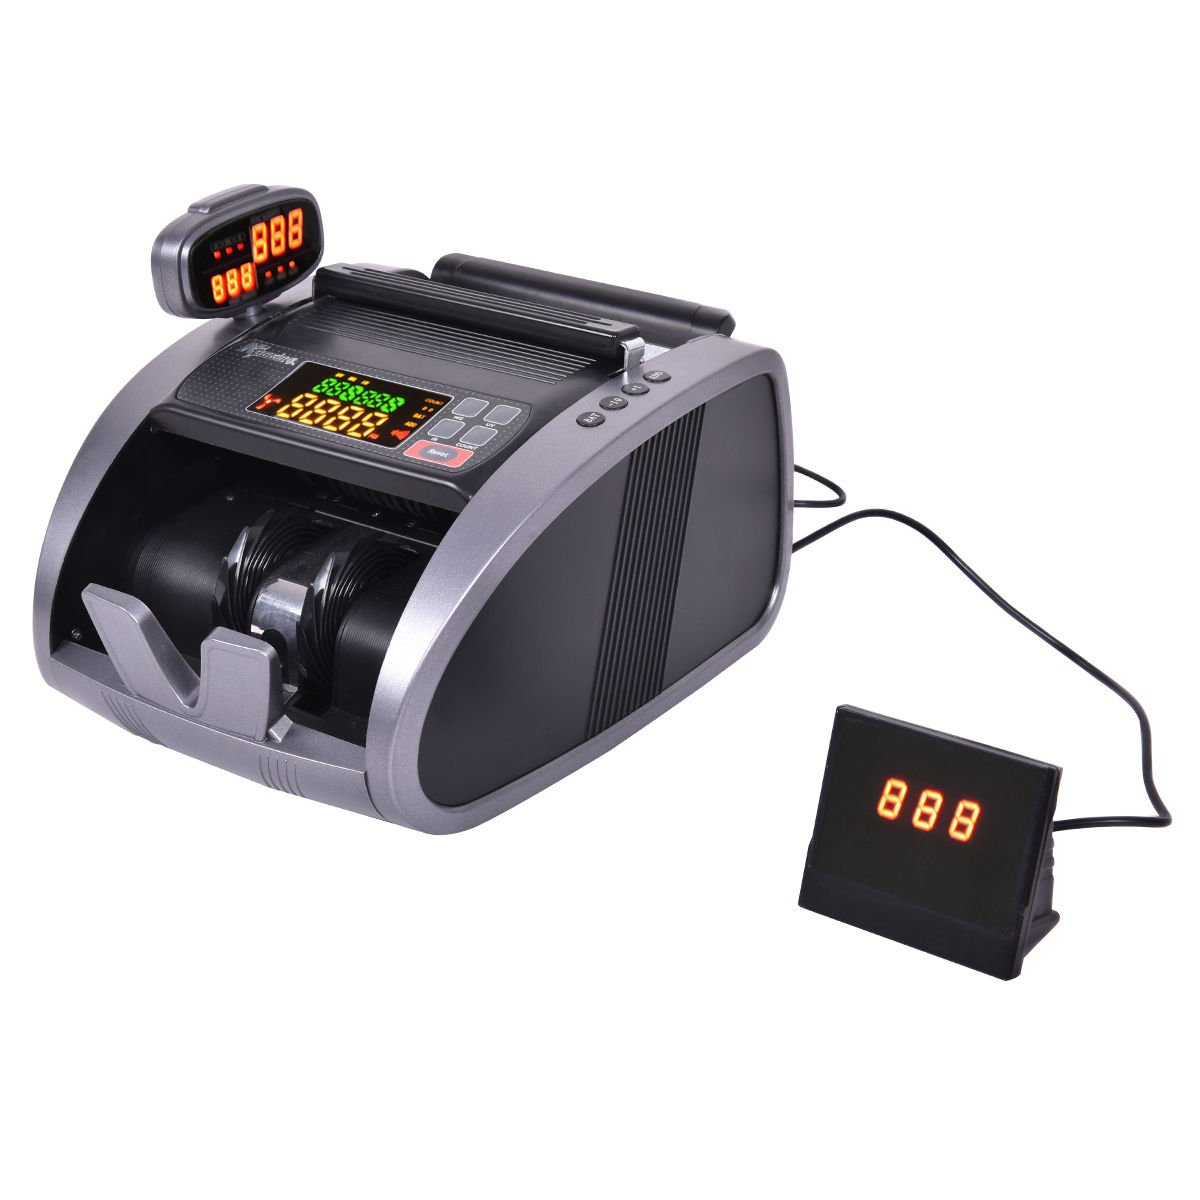 Safstar Automatic Cash Money Counter Worldwide Currency Cash Counting Machine Bill Counterfeit Detector UV IR MG with Color LED Rotating Display